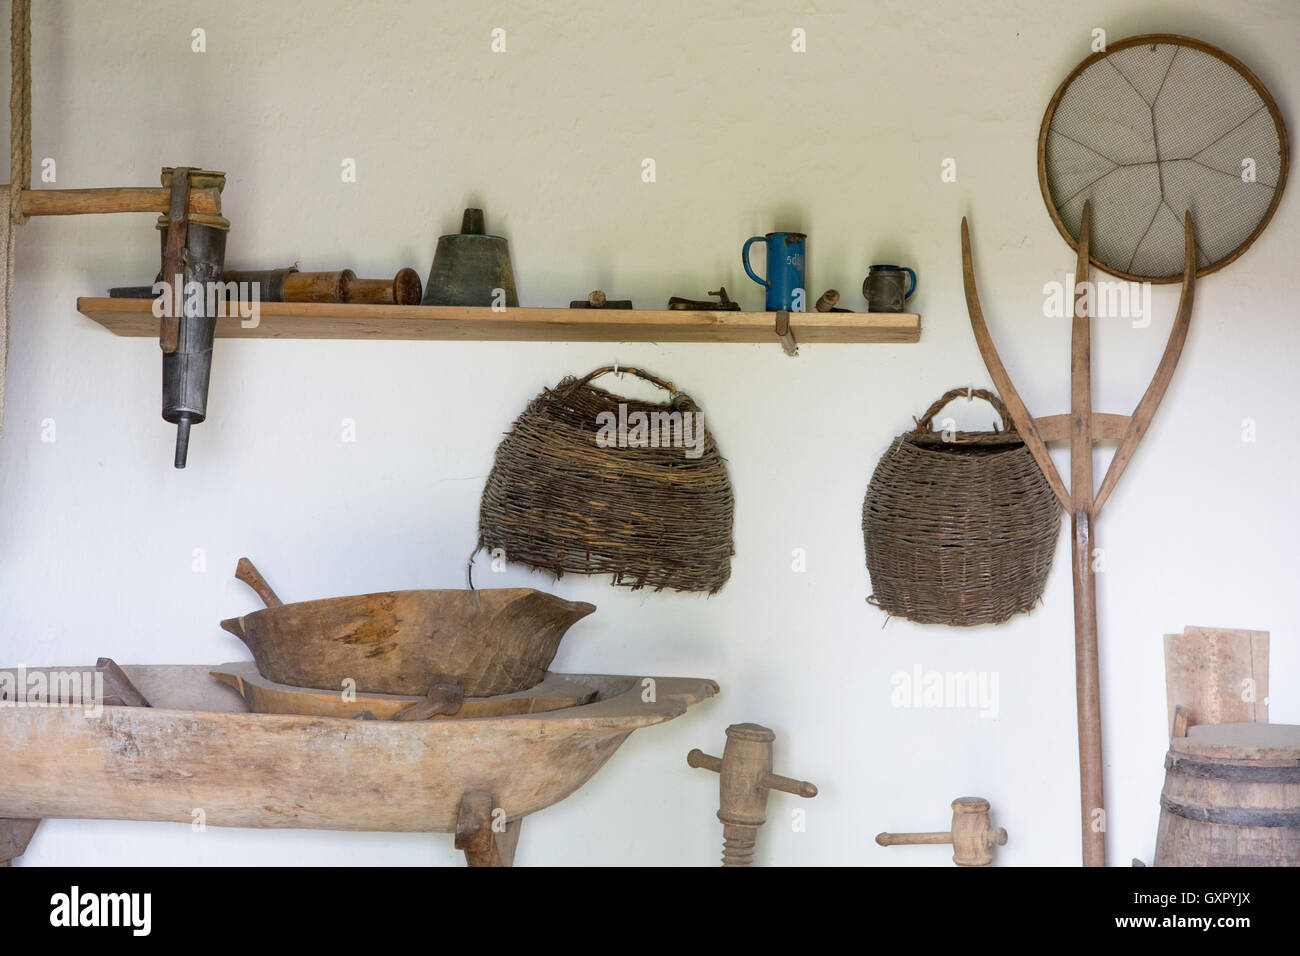 Indoor room at the Szentendre Open Air Museum, Hungary - Stock Image